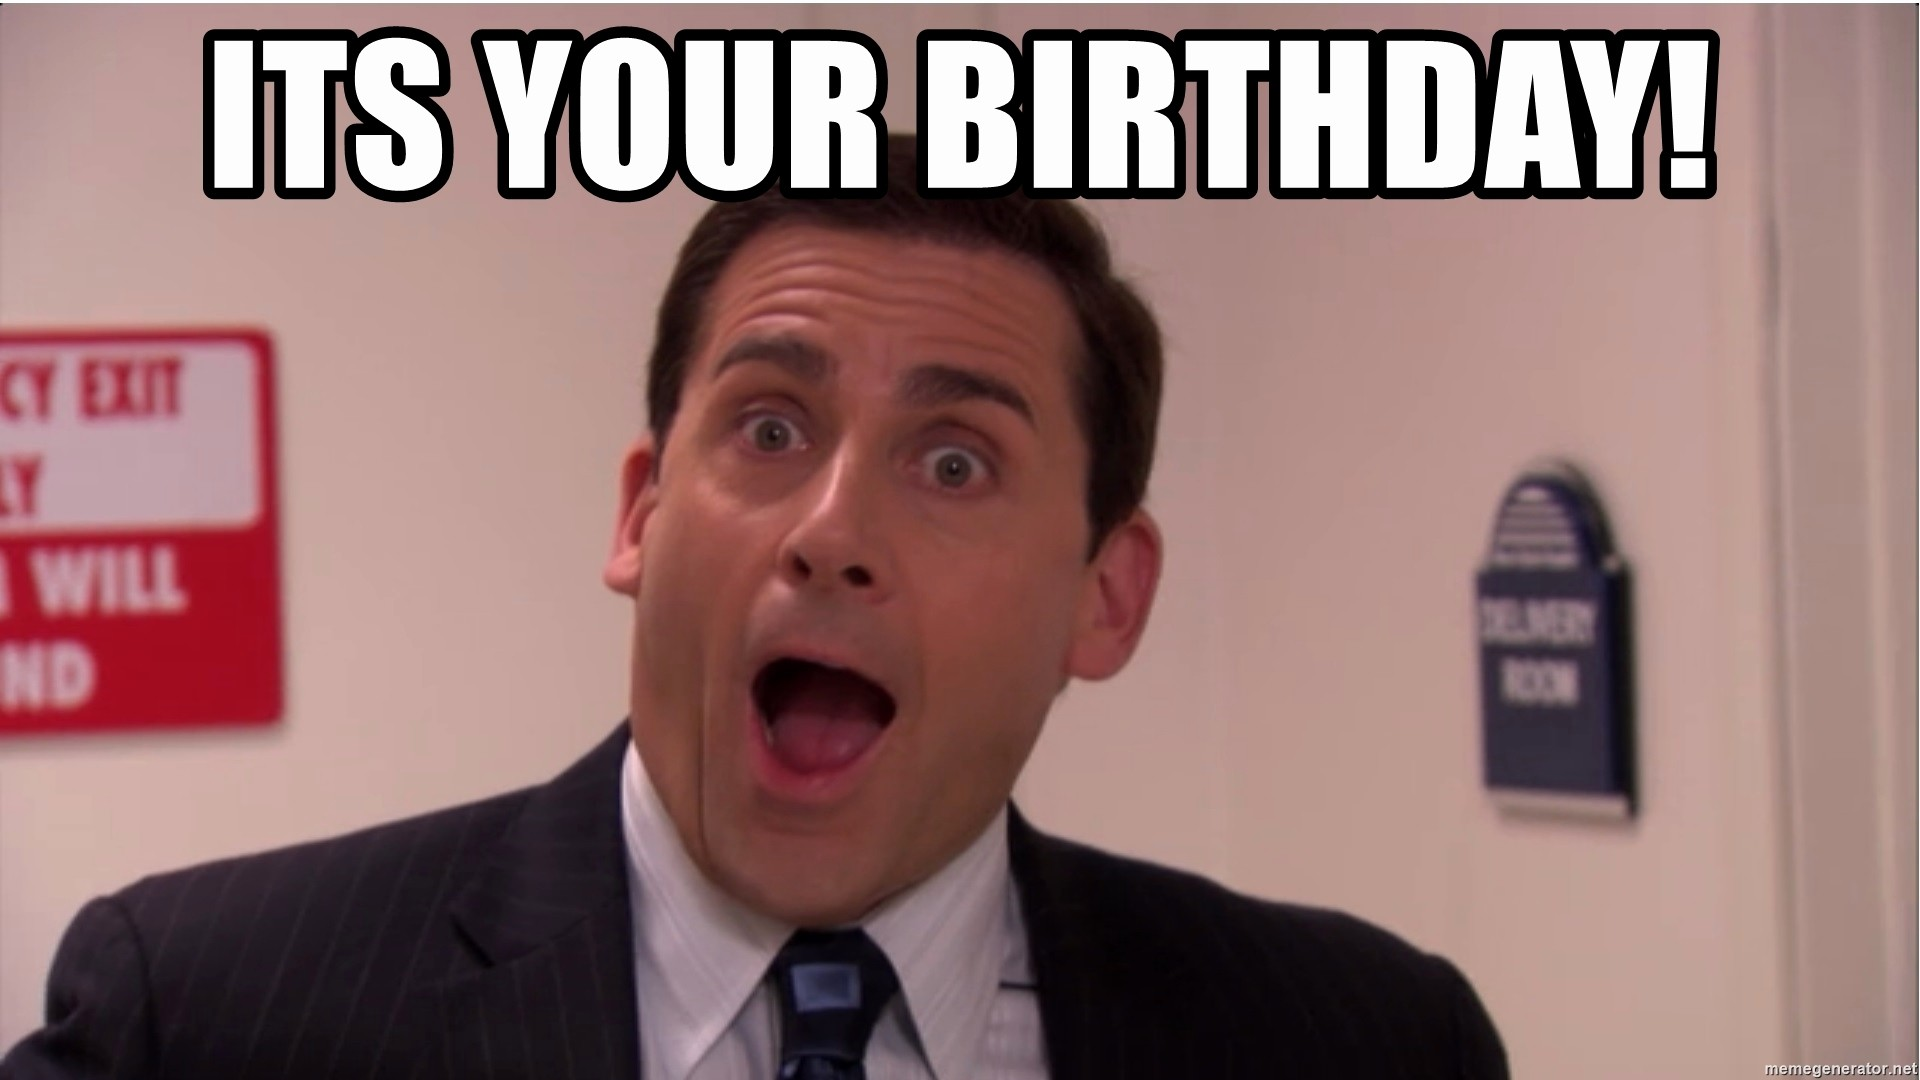 Happy Birthday From the Office Best Of Its Your Birthday Michael Scott Dunder Mifflin